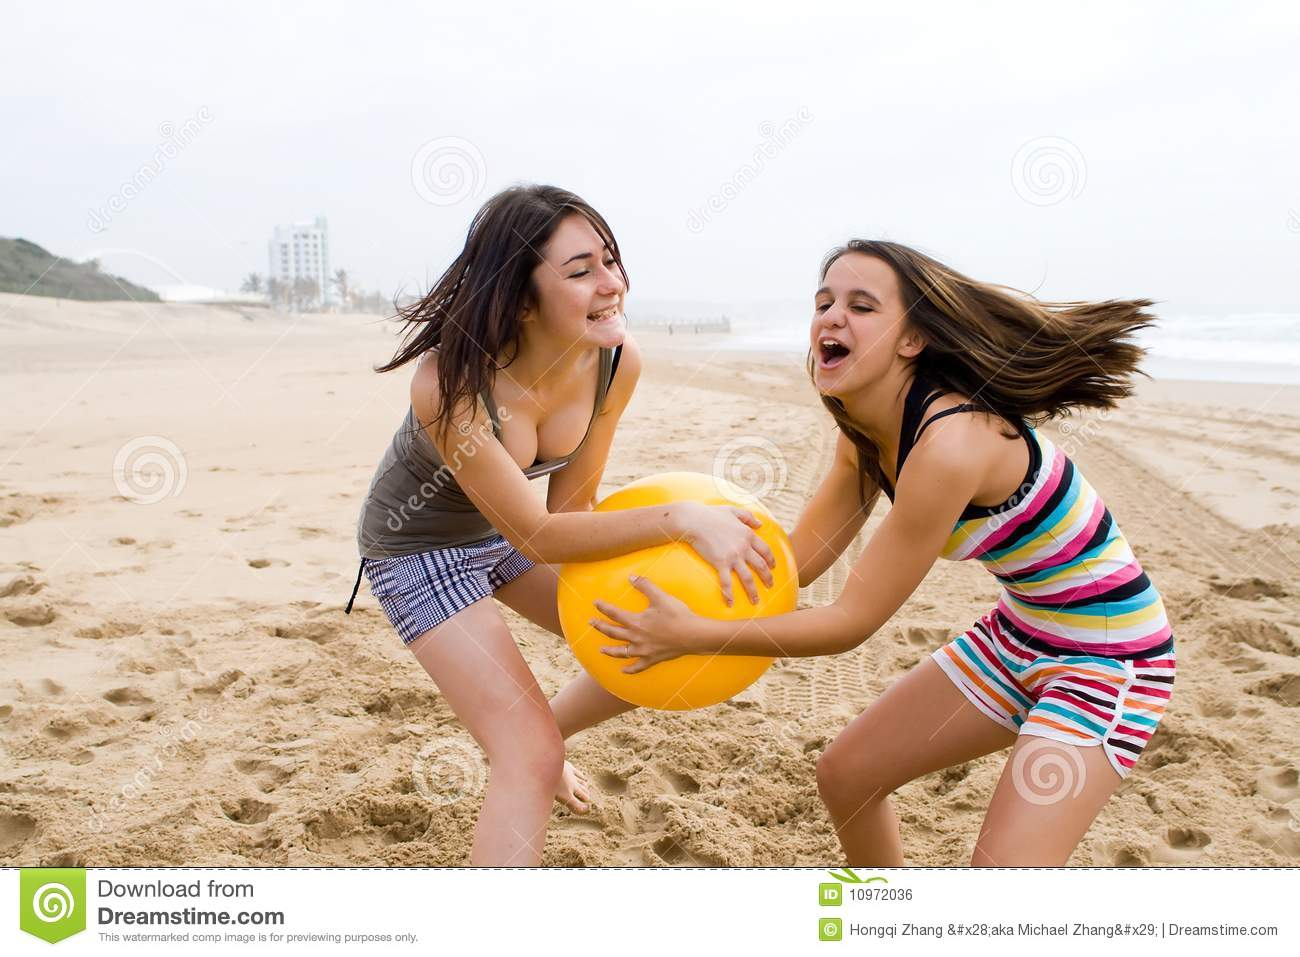 That young teen girl beach amusing phrase